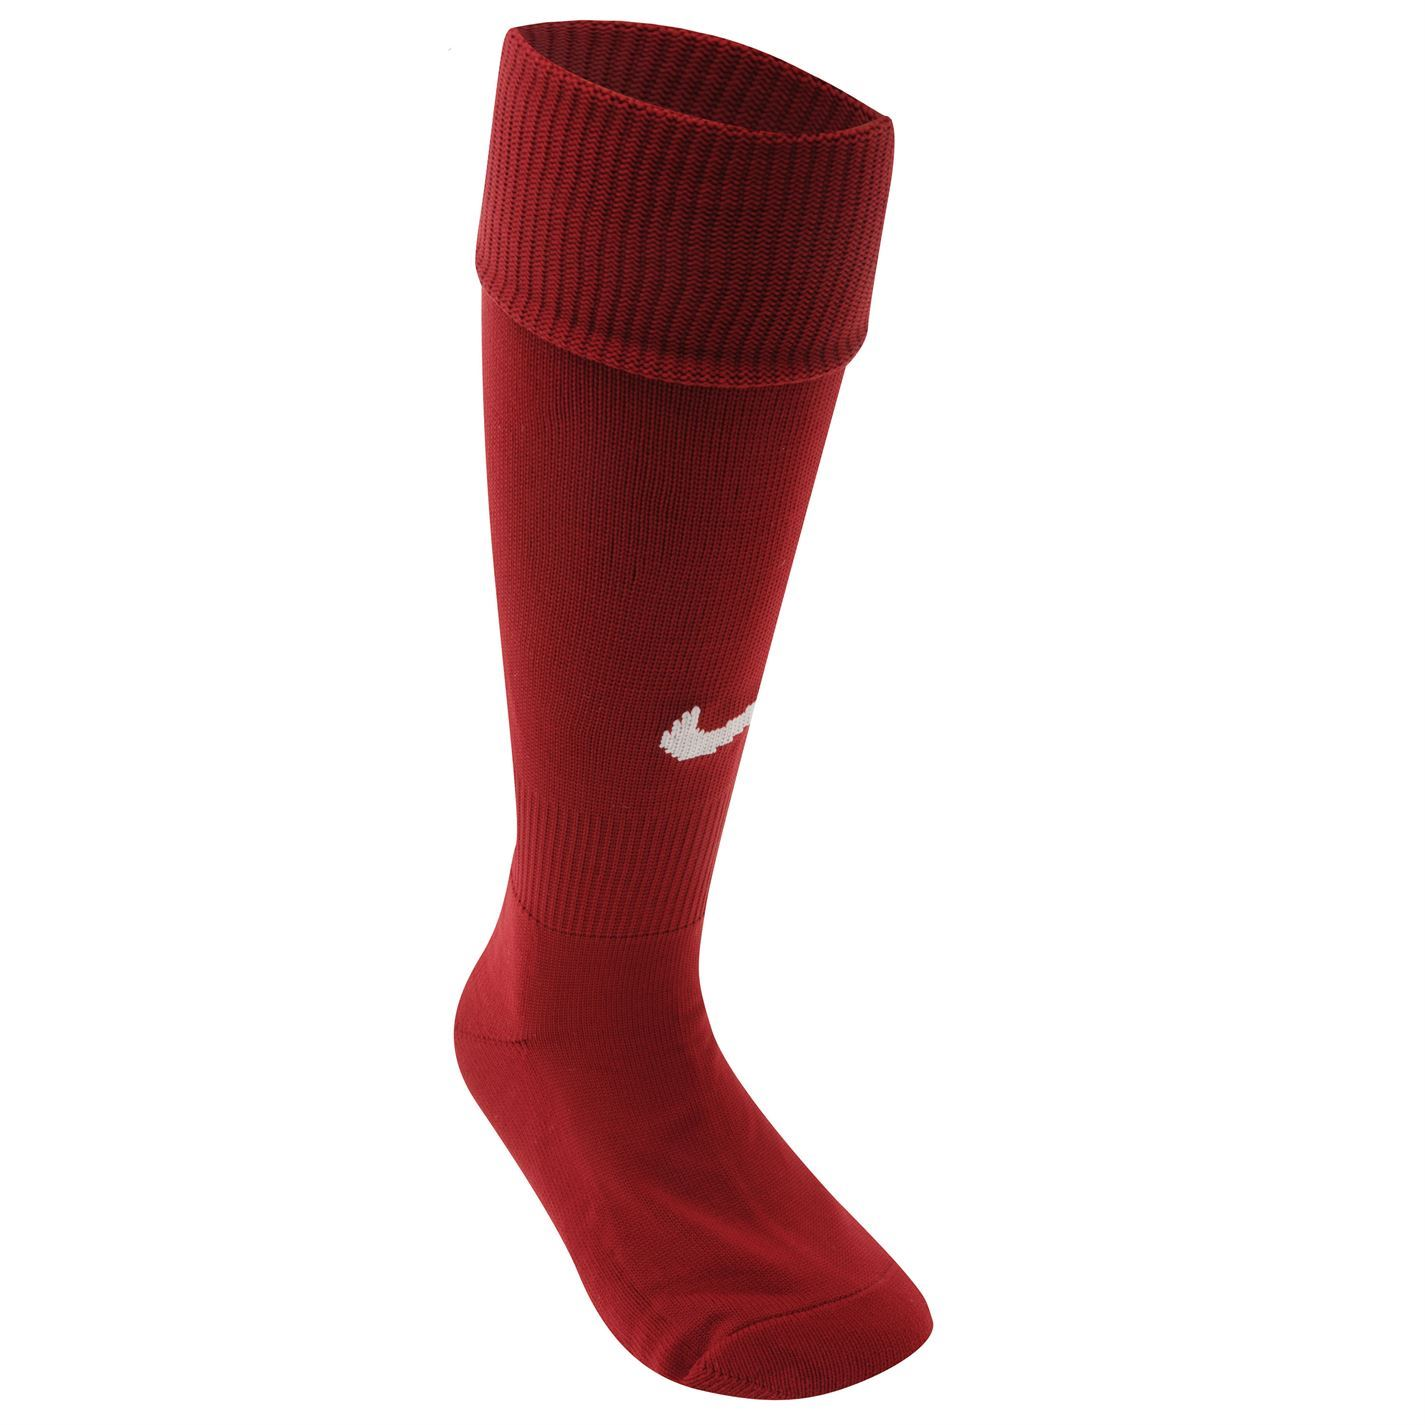 Nike Park III Football Socks Maroon Soccer | eBay - photo#40